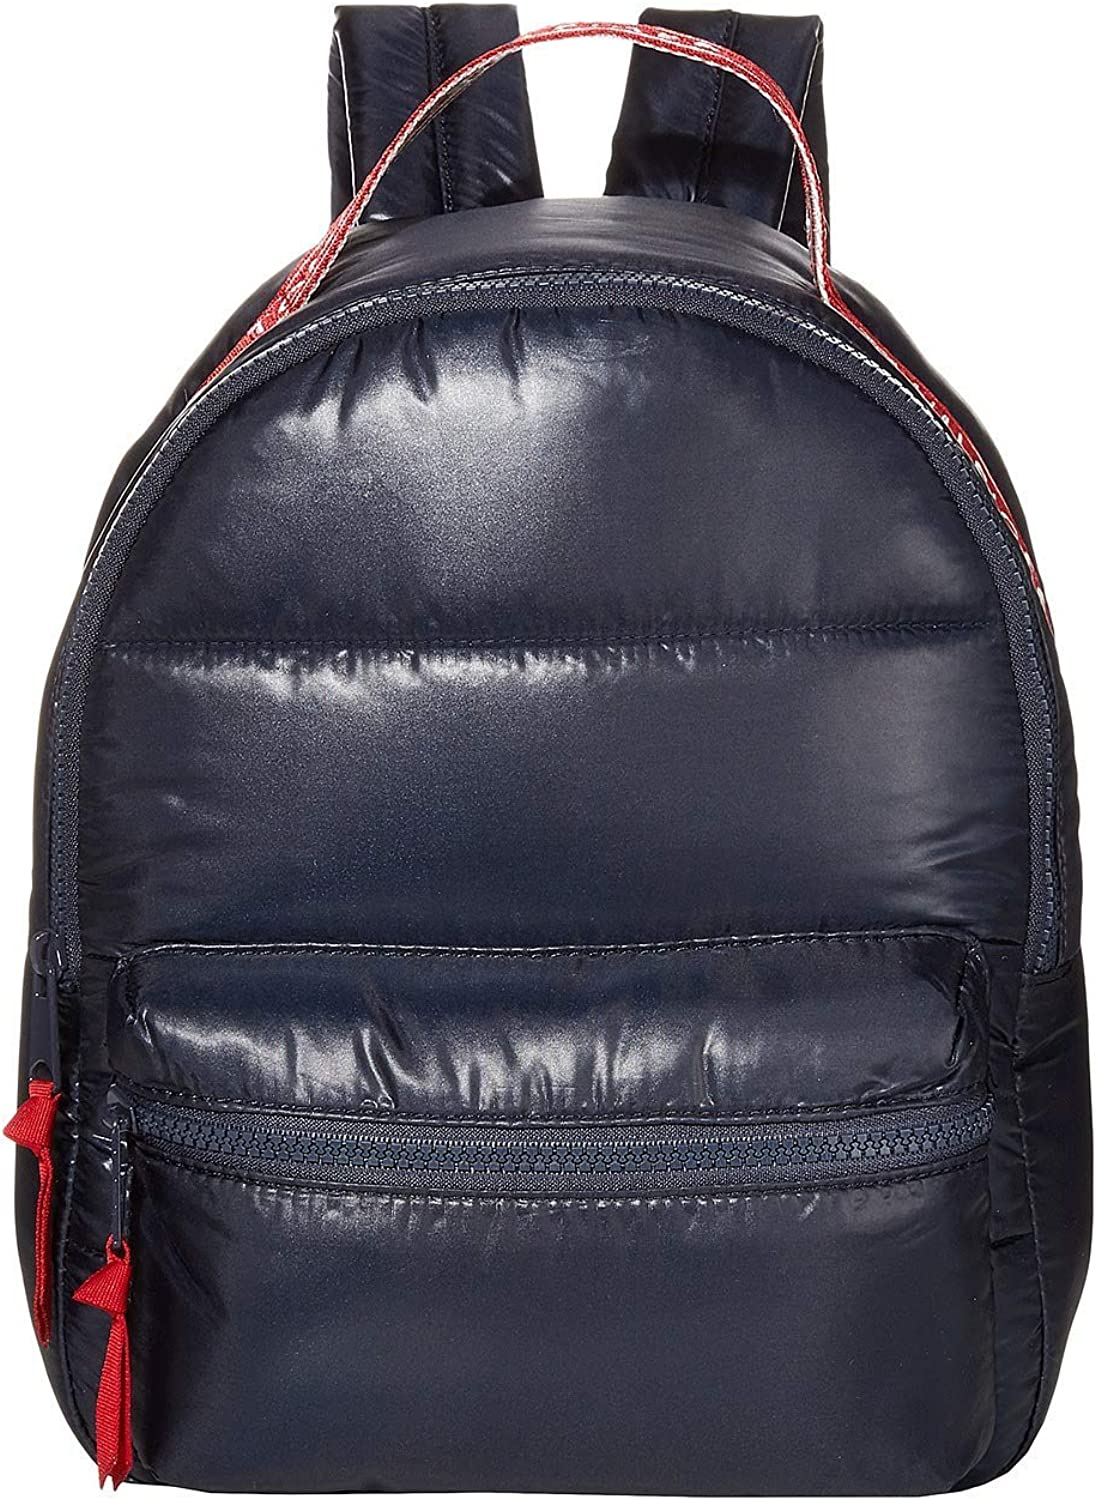 Tommy Hilfiger Skye Nylon Backpack